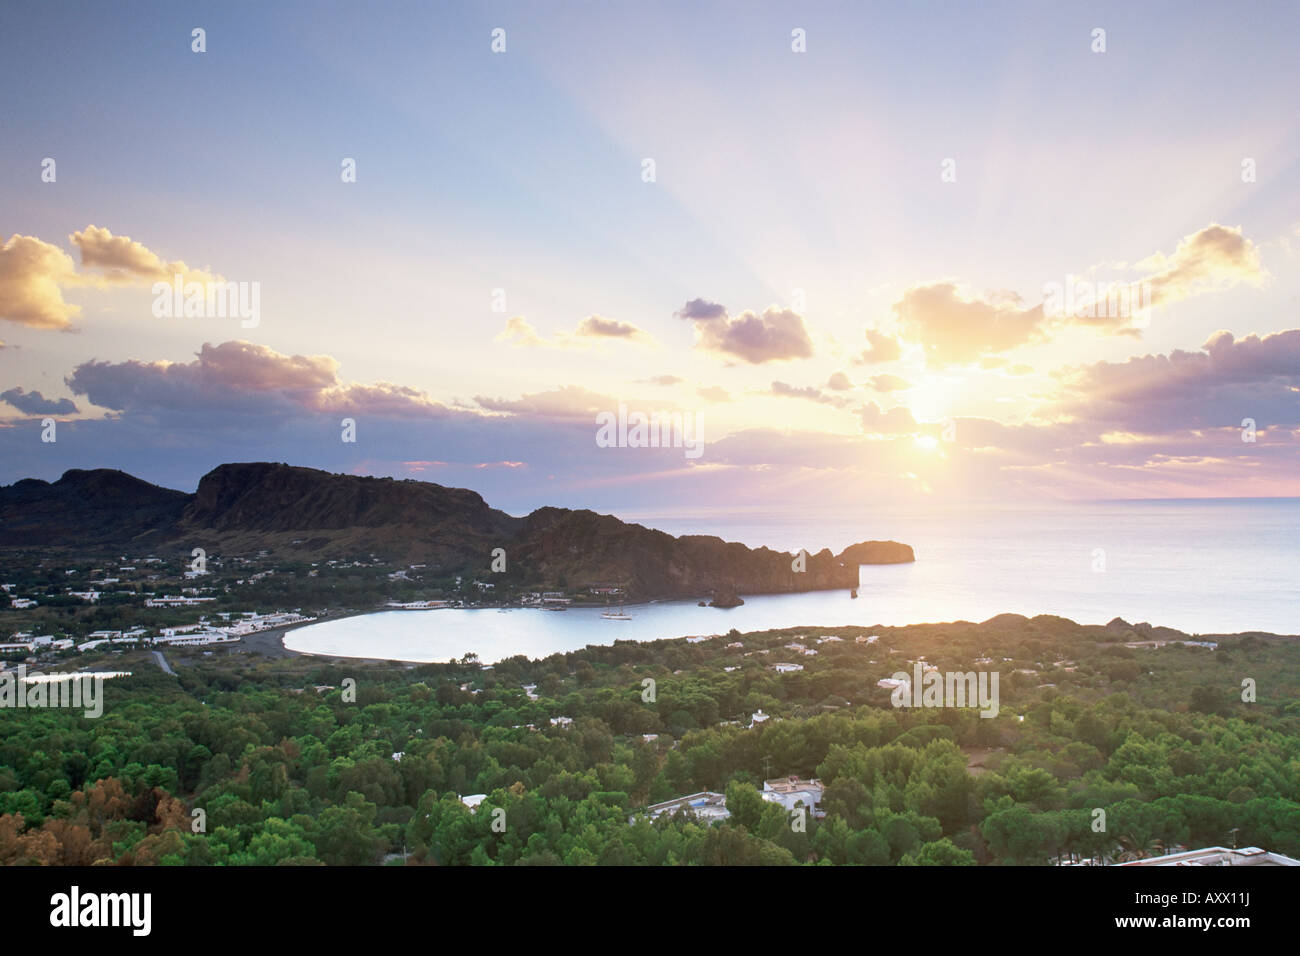 Vulcano Island, Eolie Islands (Aeolian Islands) (Lipari Islands), Italy, Europe - Stock Image